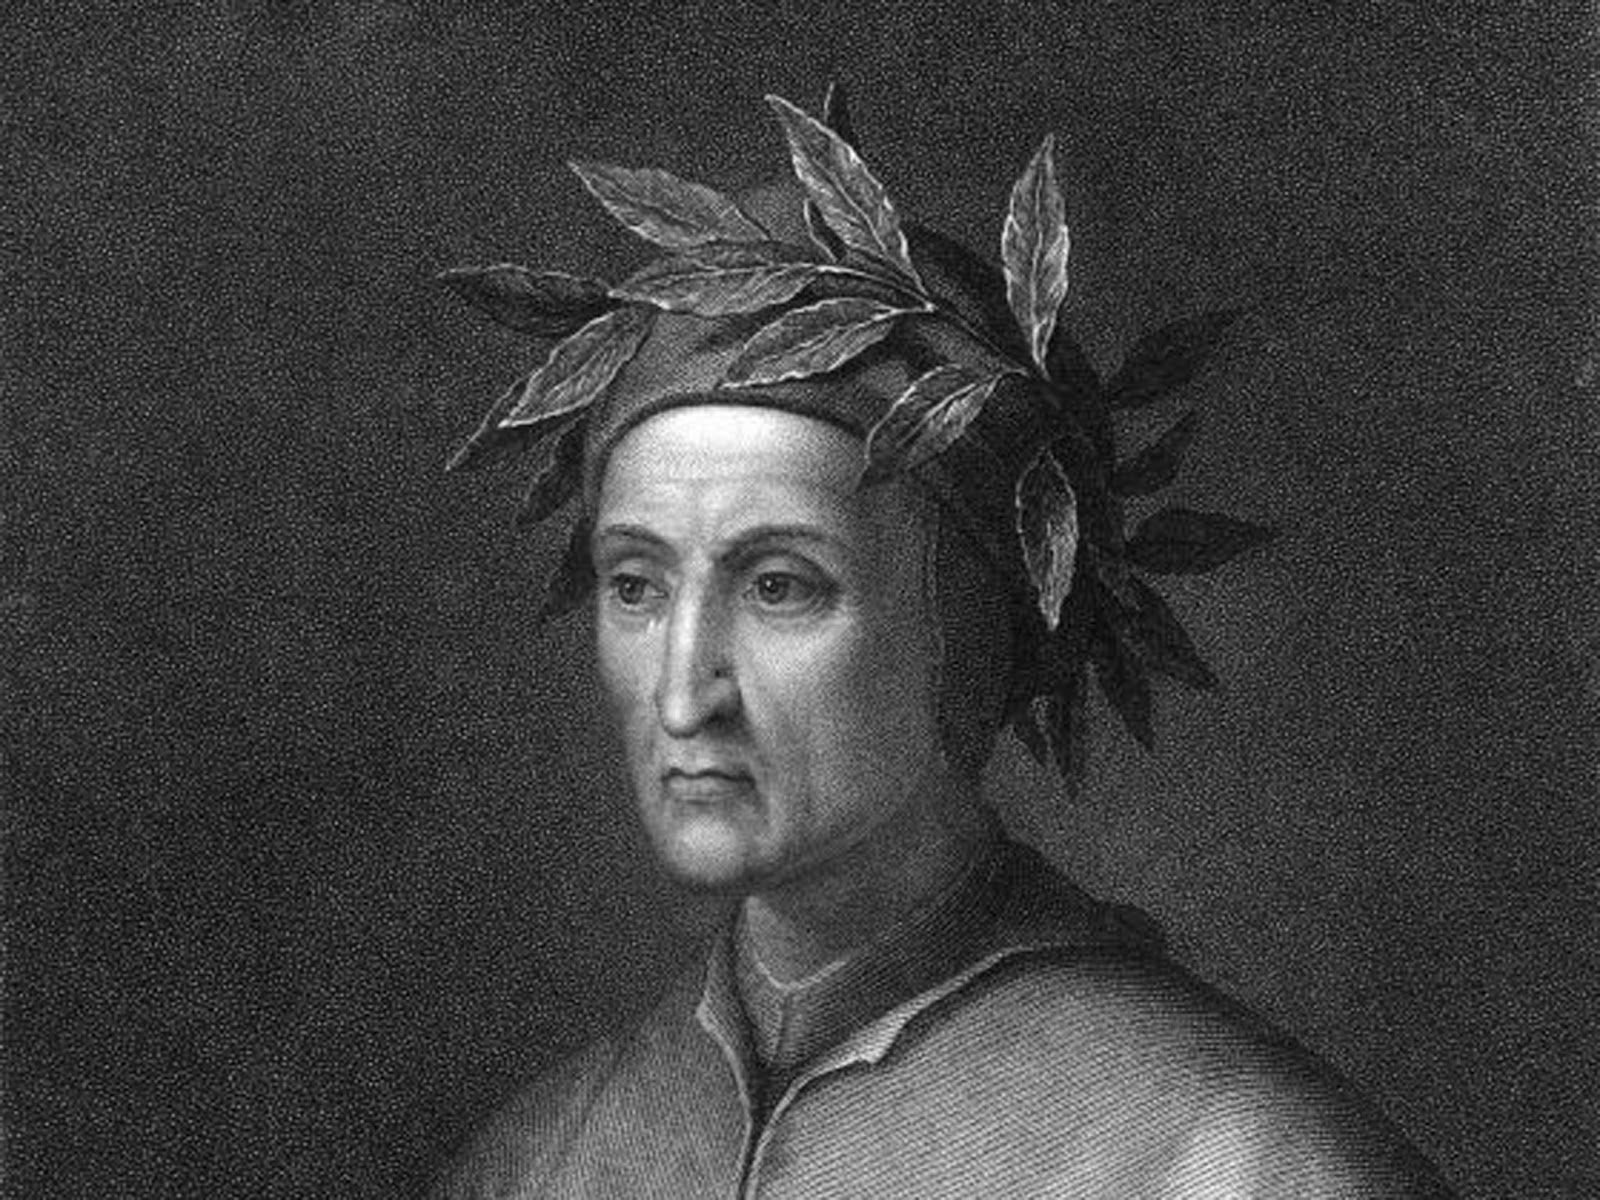 a biography of dante alighieri a medieval italian poet Alighieri, dante - italian poet and writer brief biography and list dante alighieri of medieval works dantenet - an online service for scholars of dante provided by the dante alighieri dante society of america.